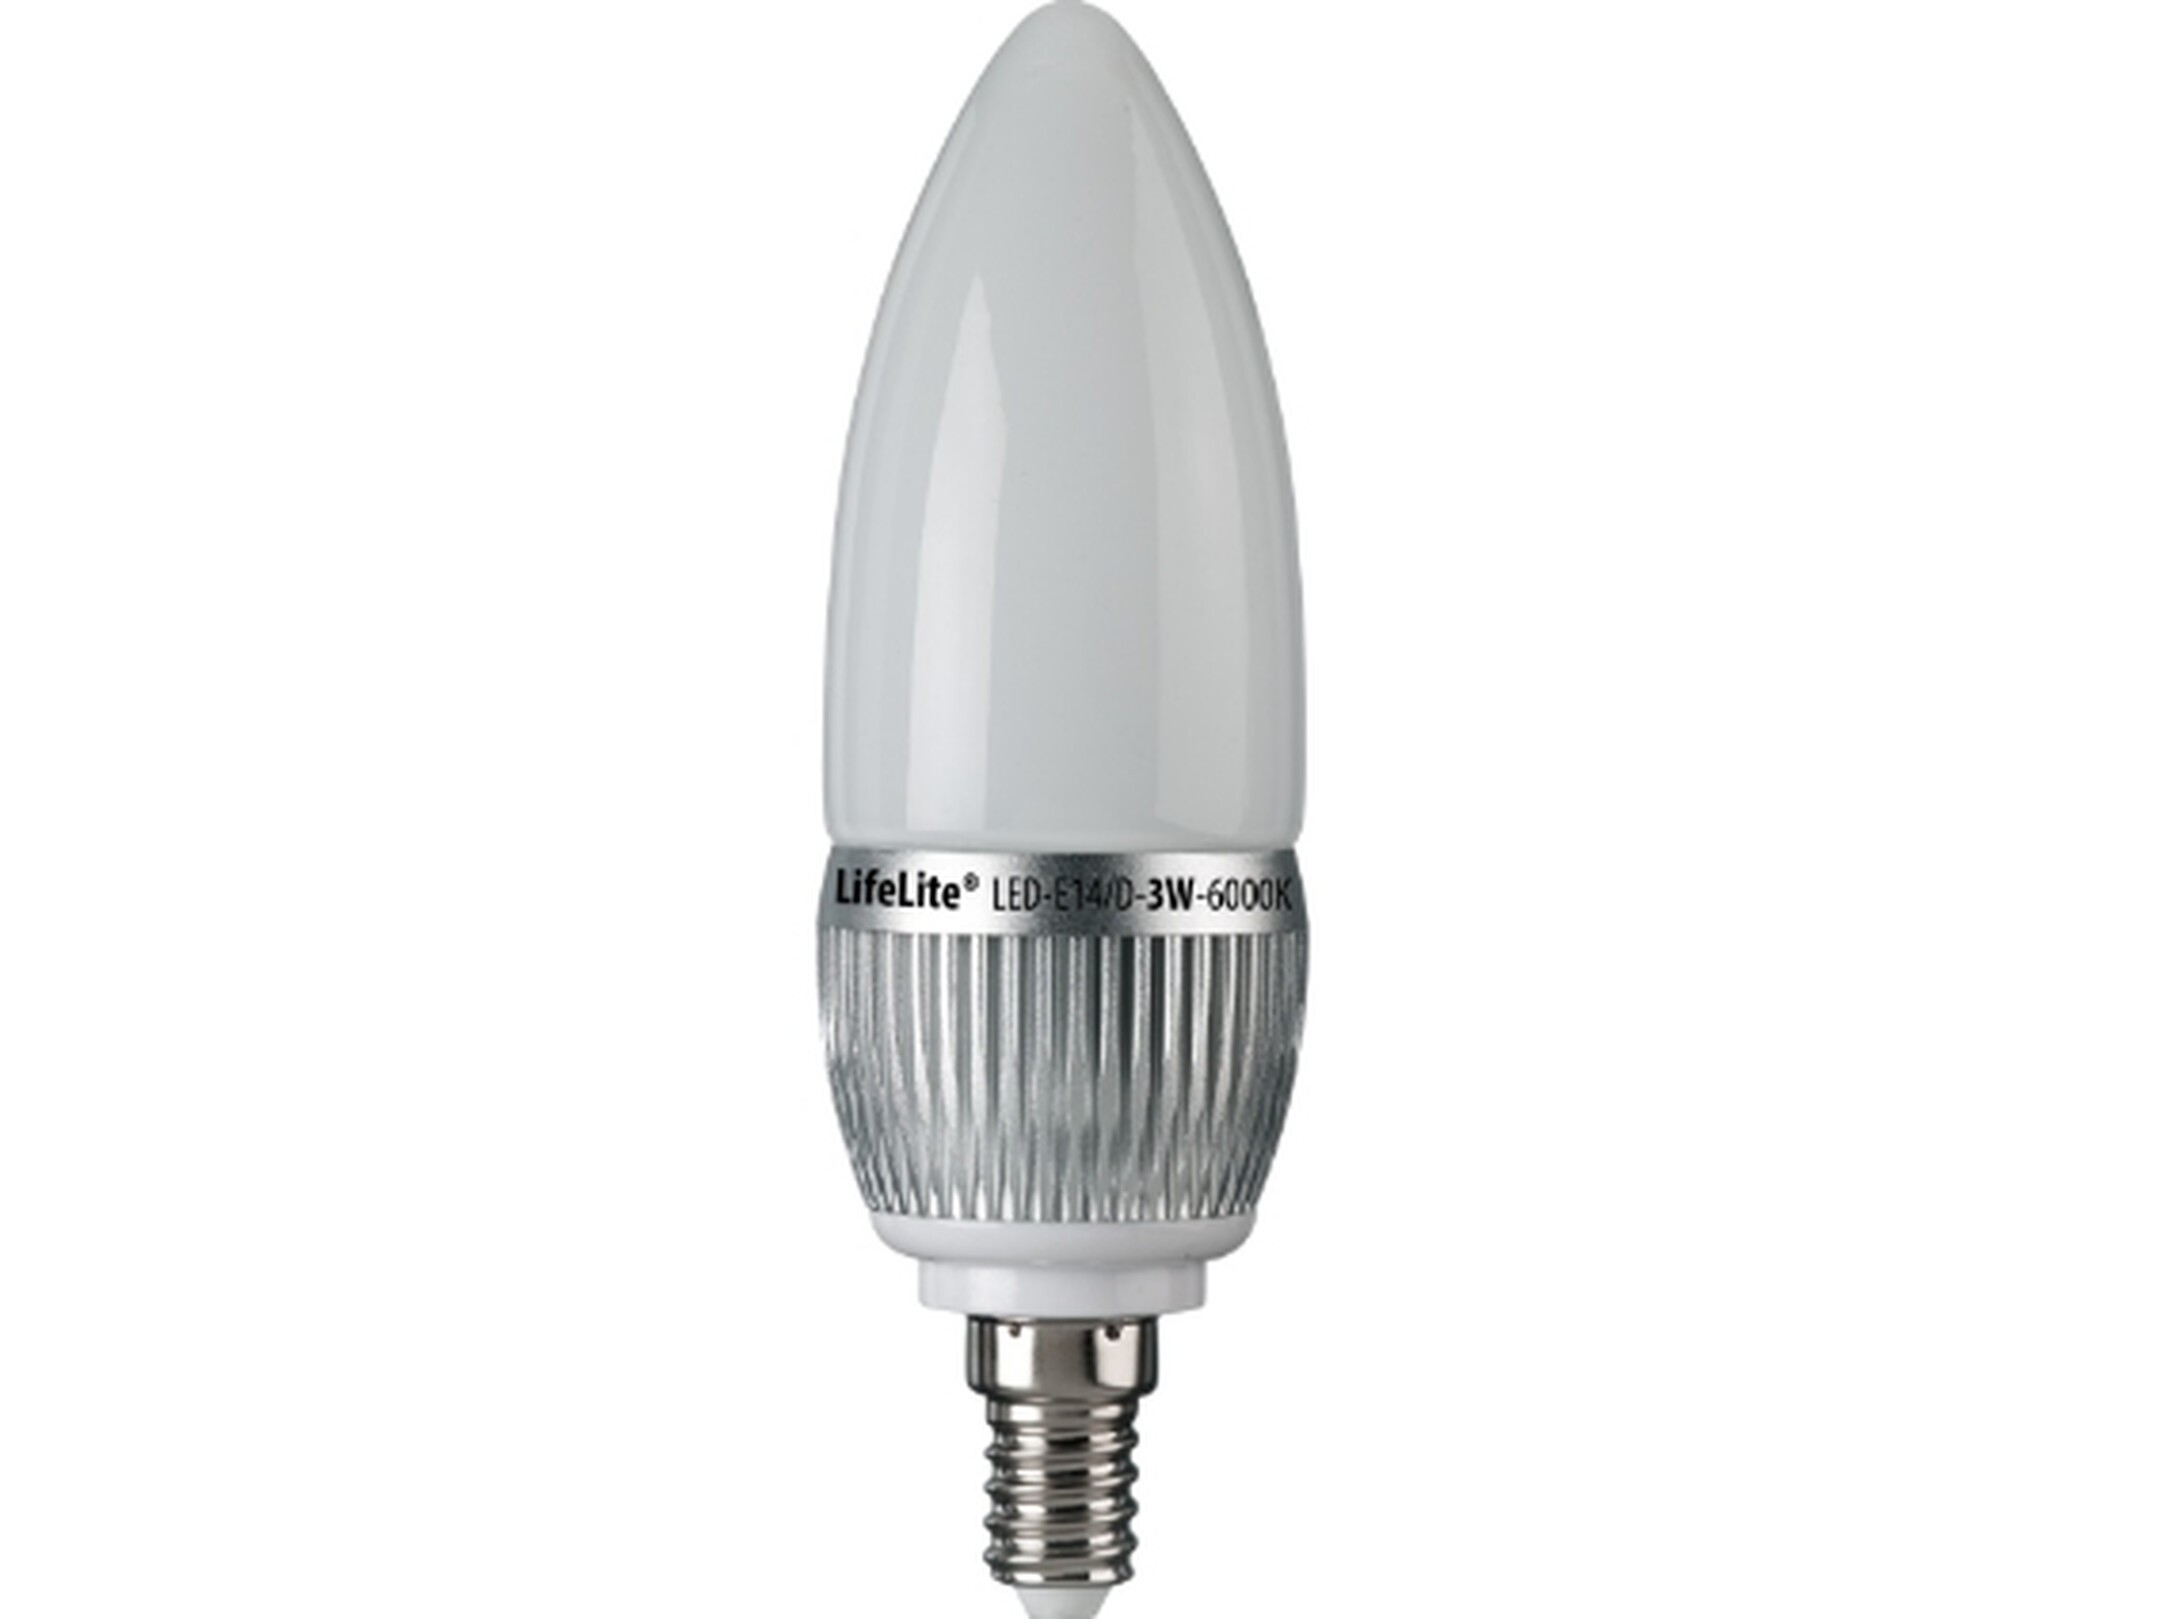 Led E14 Dimmbar Vollspektrumkerze Lifelite Led 3 W E14 Dimmbar Kaltweiss